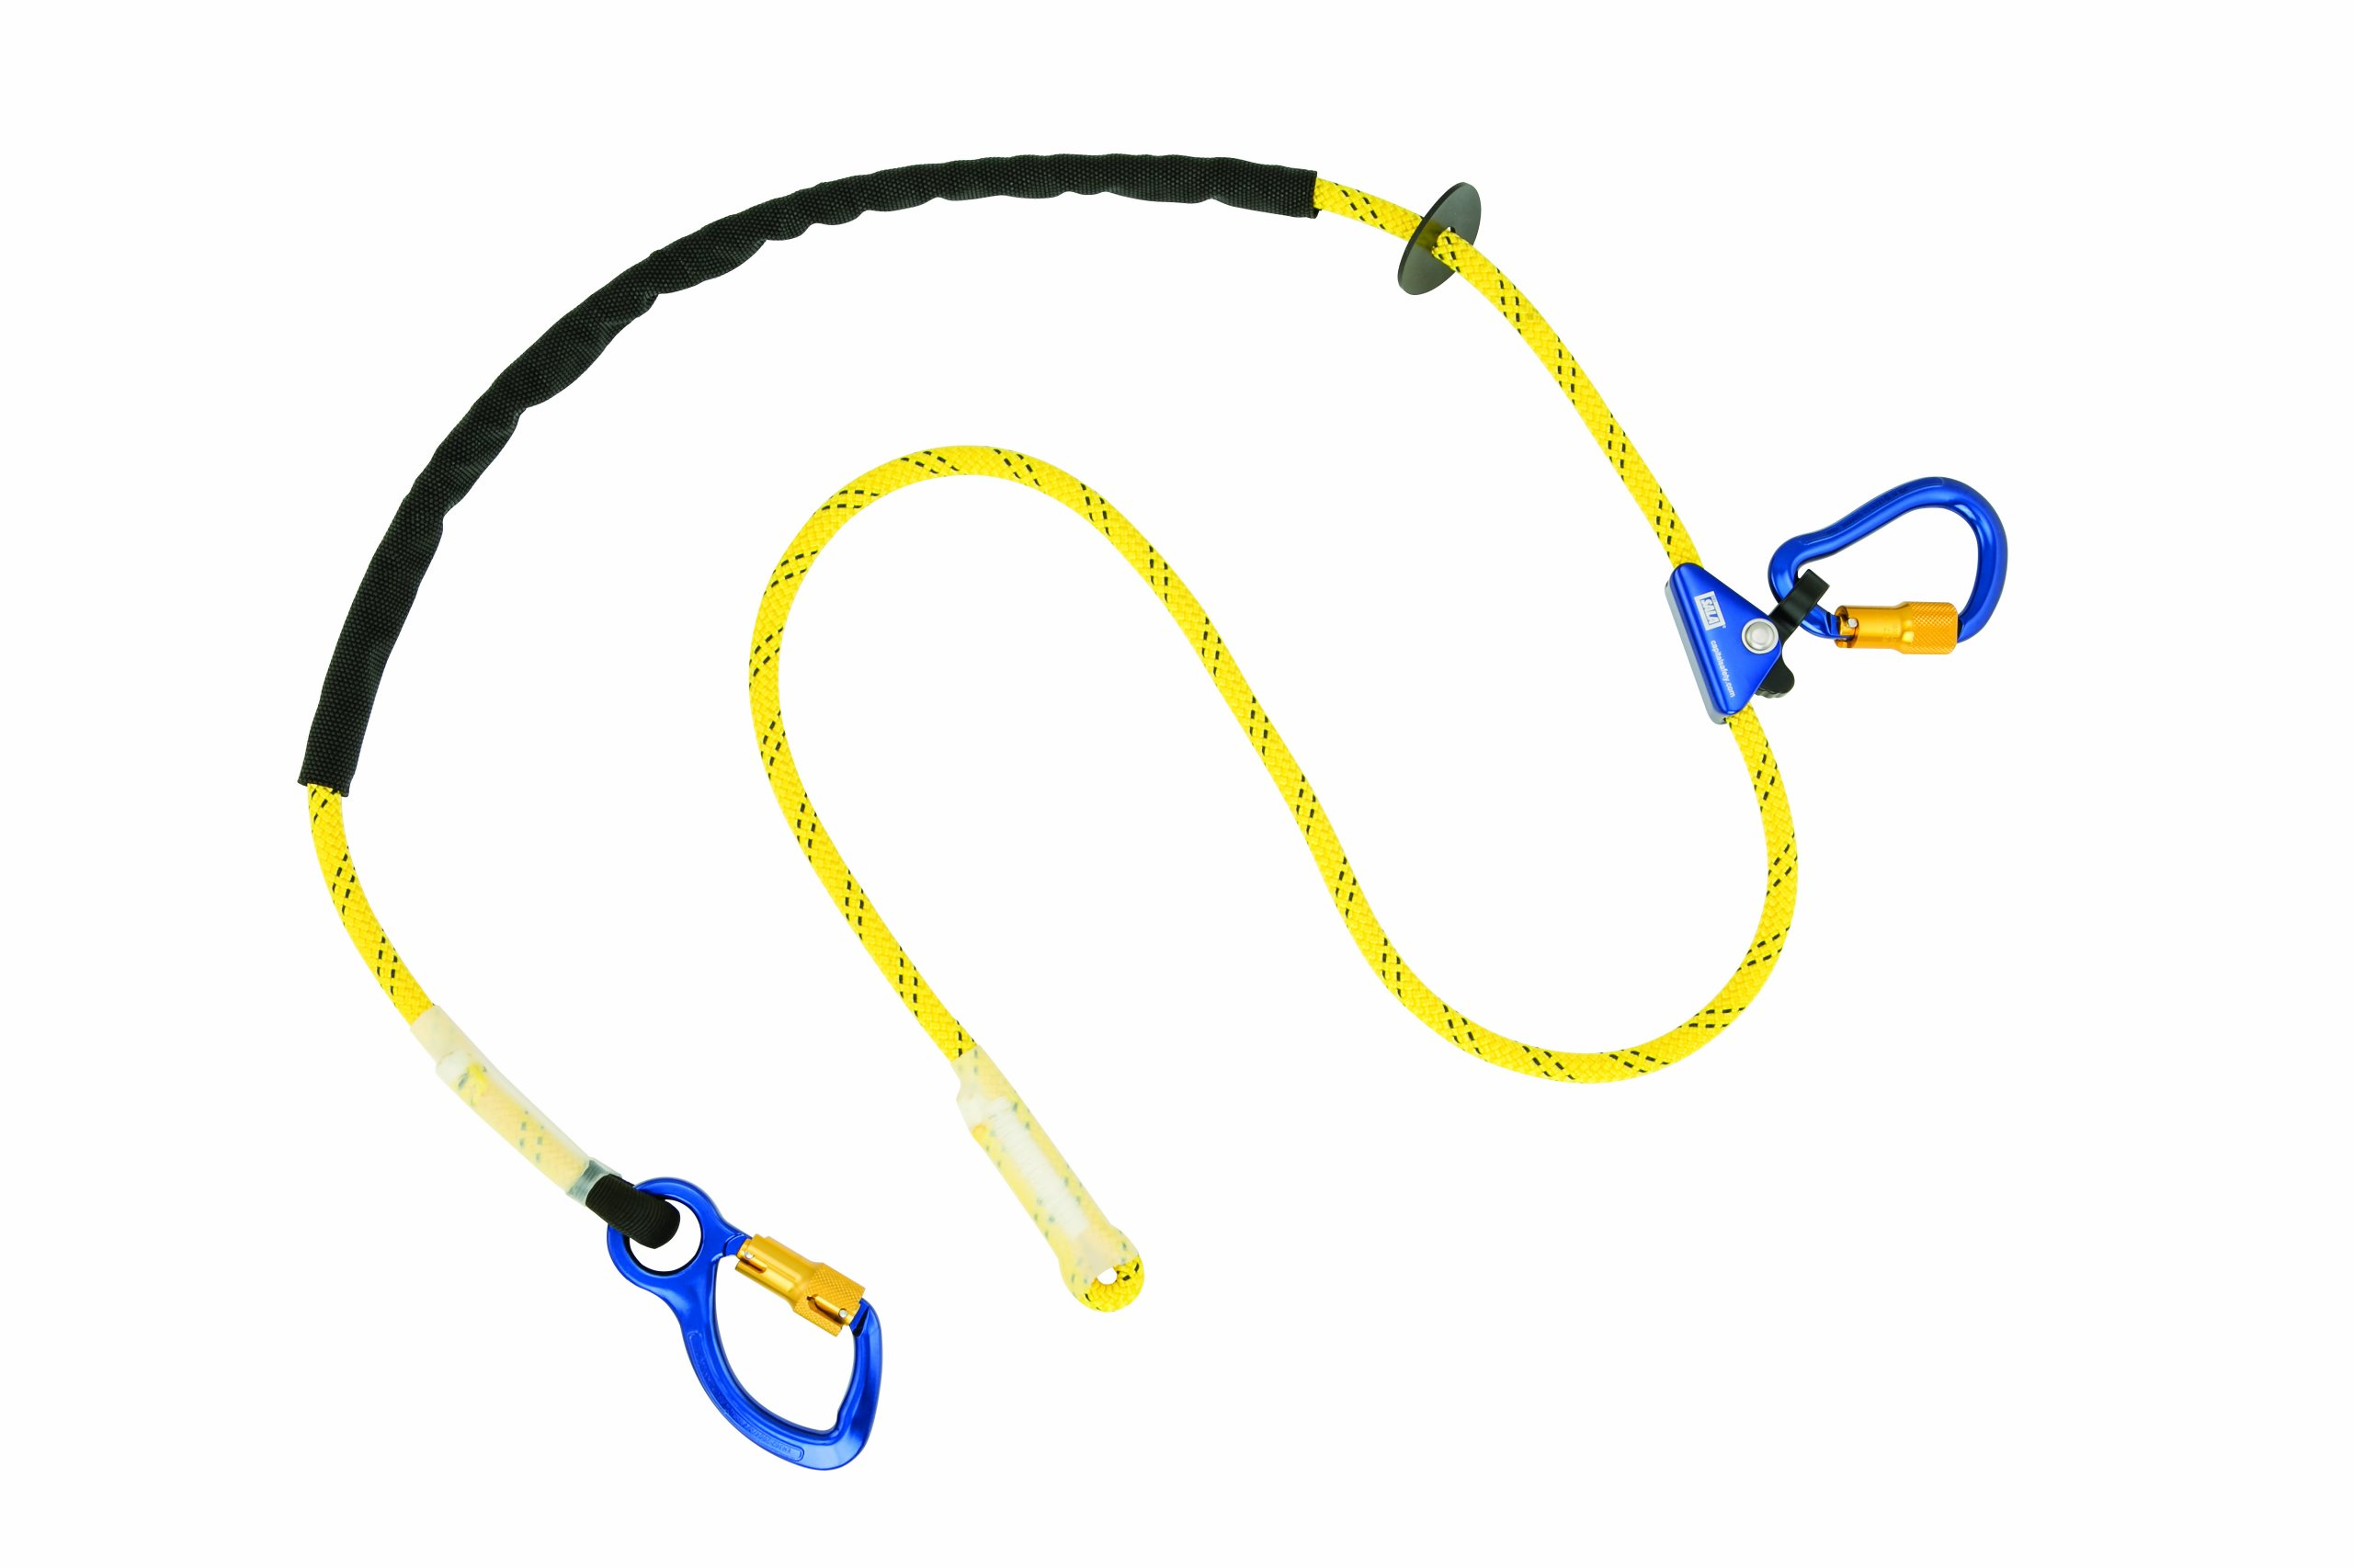 3M DBI-SALA 1234080 Adjustable Rope Positioning Strap, 8' with Aluminum Carabiner At One End, Rope Adjuster, Aluminum Carabiner At Other End, Yellow/Black/Blue